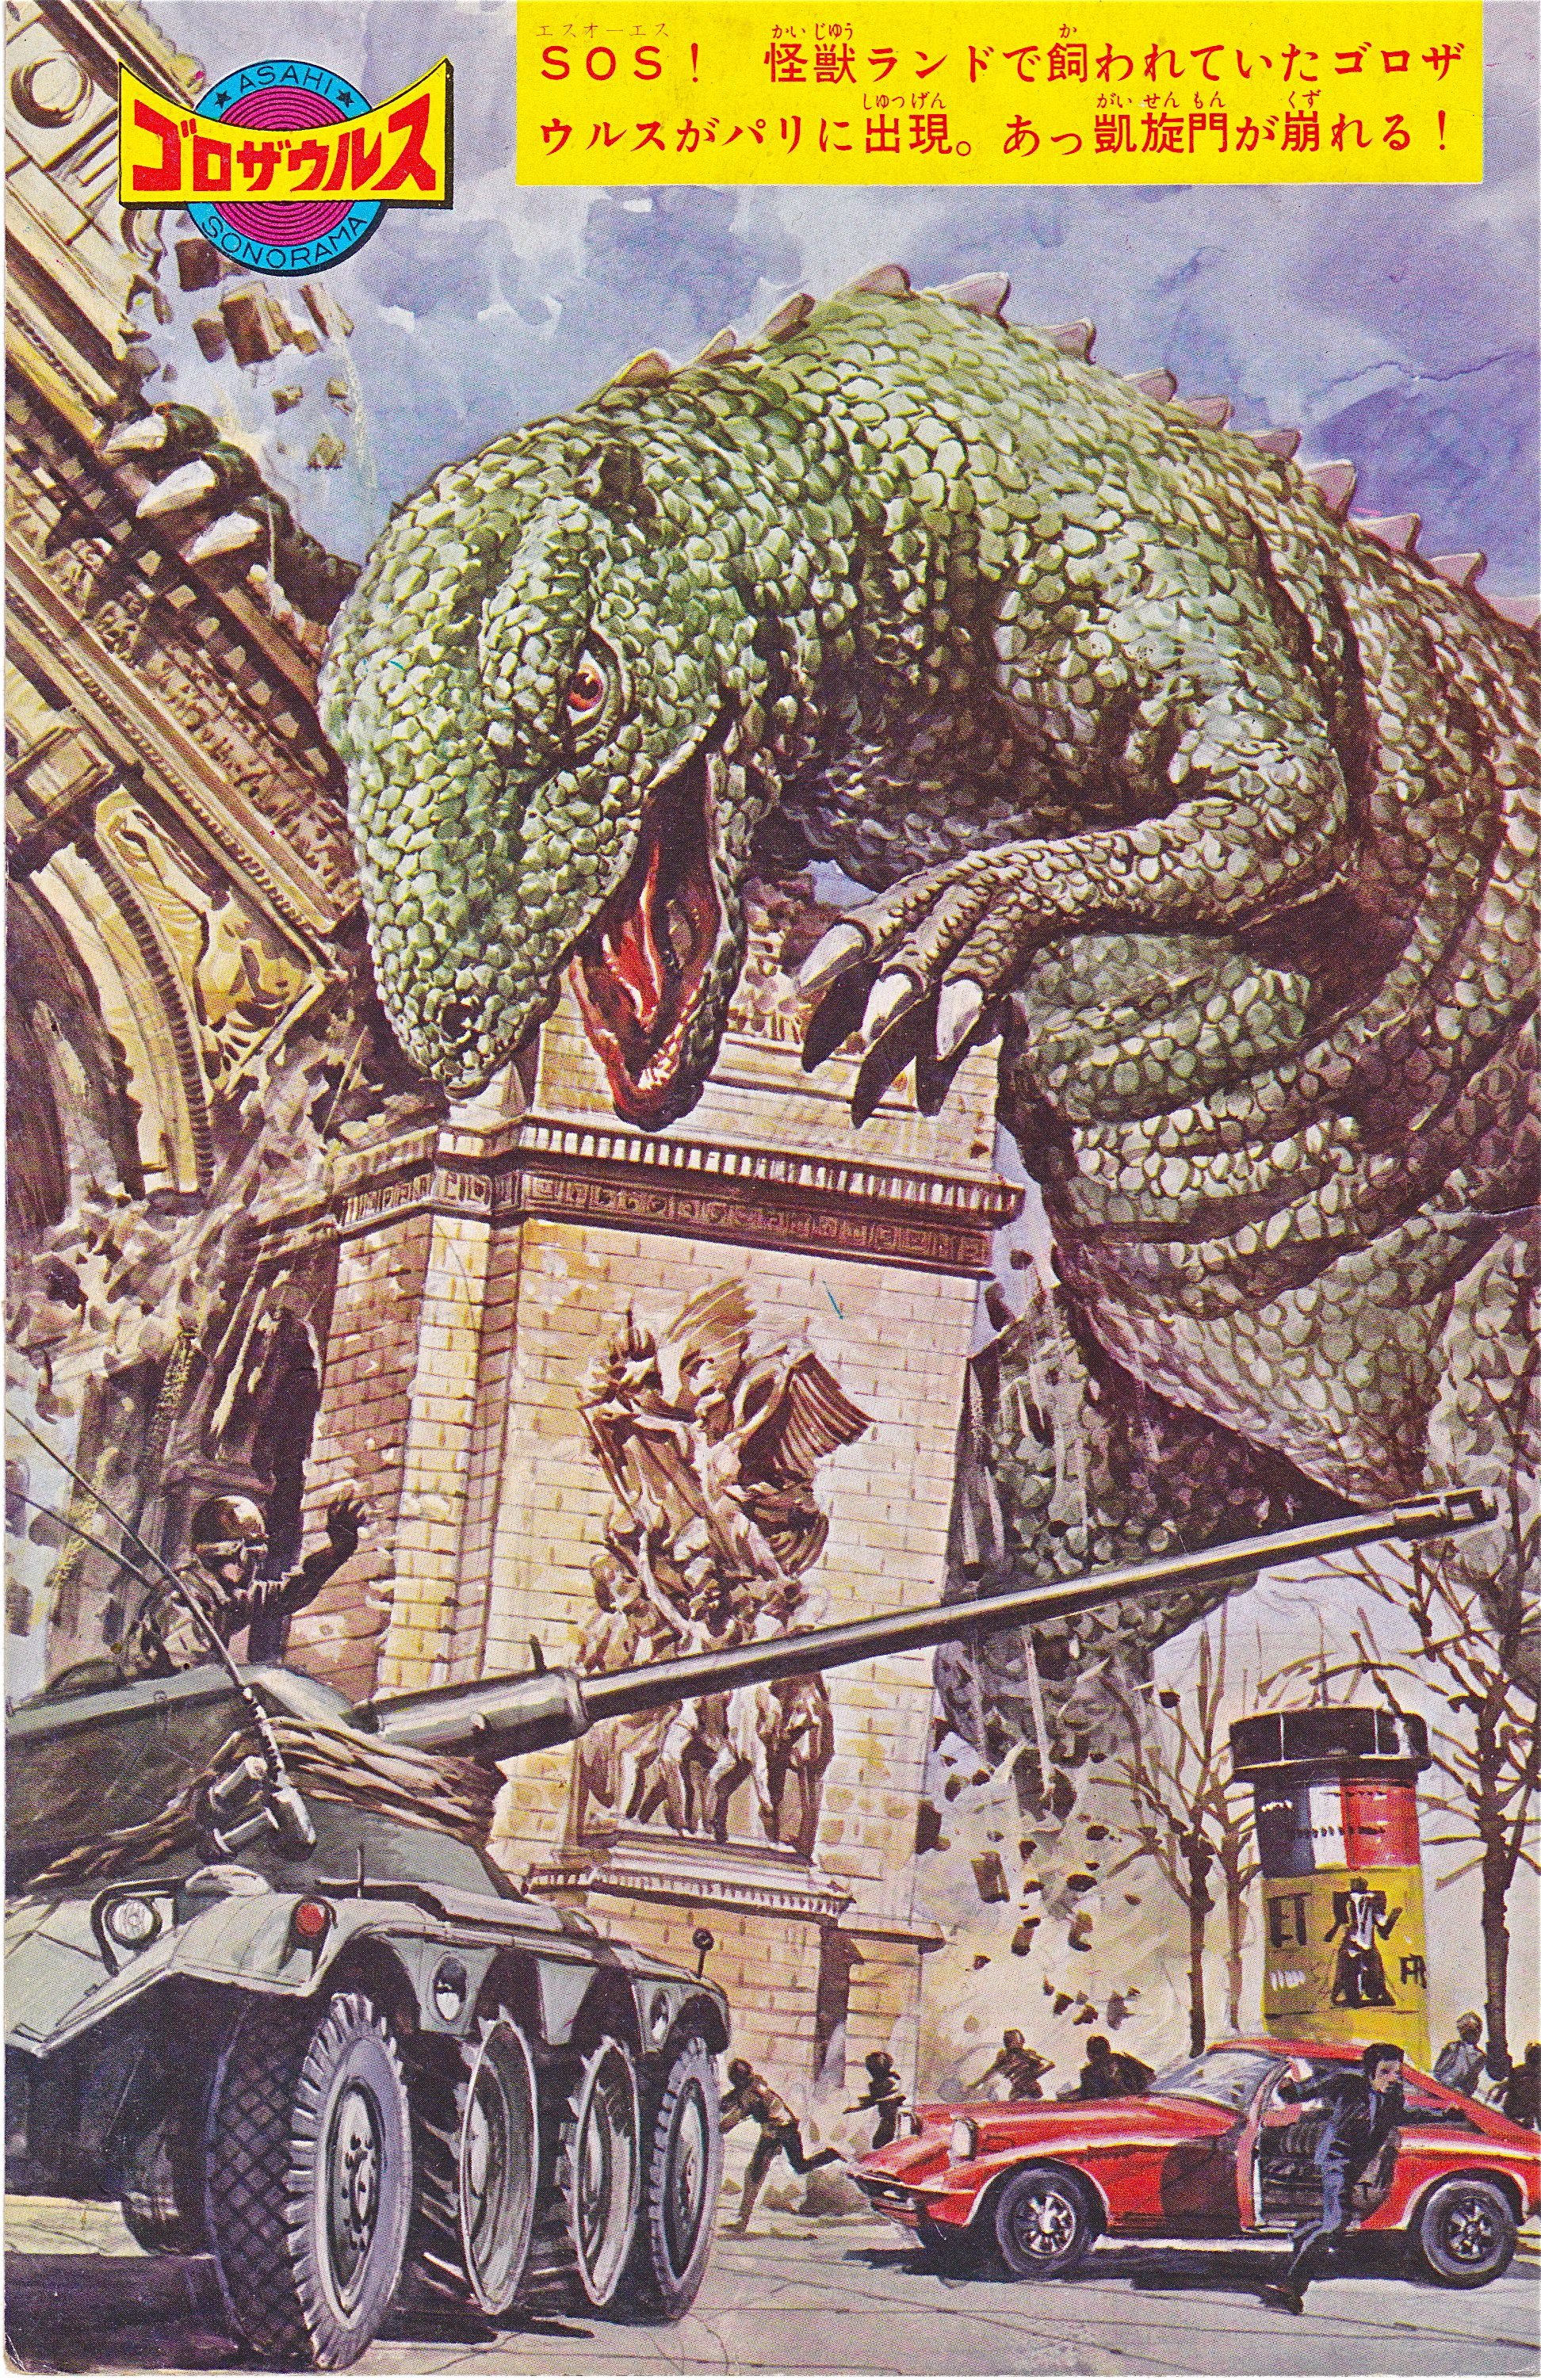 Not Baragon, stupid, it's Gorosaurus who attacks Paris! Sonorama art from DESTROY ALL